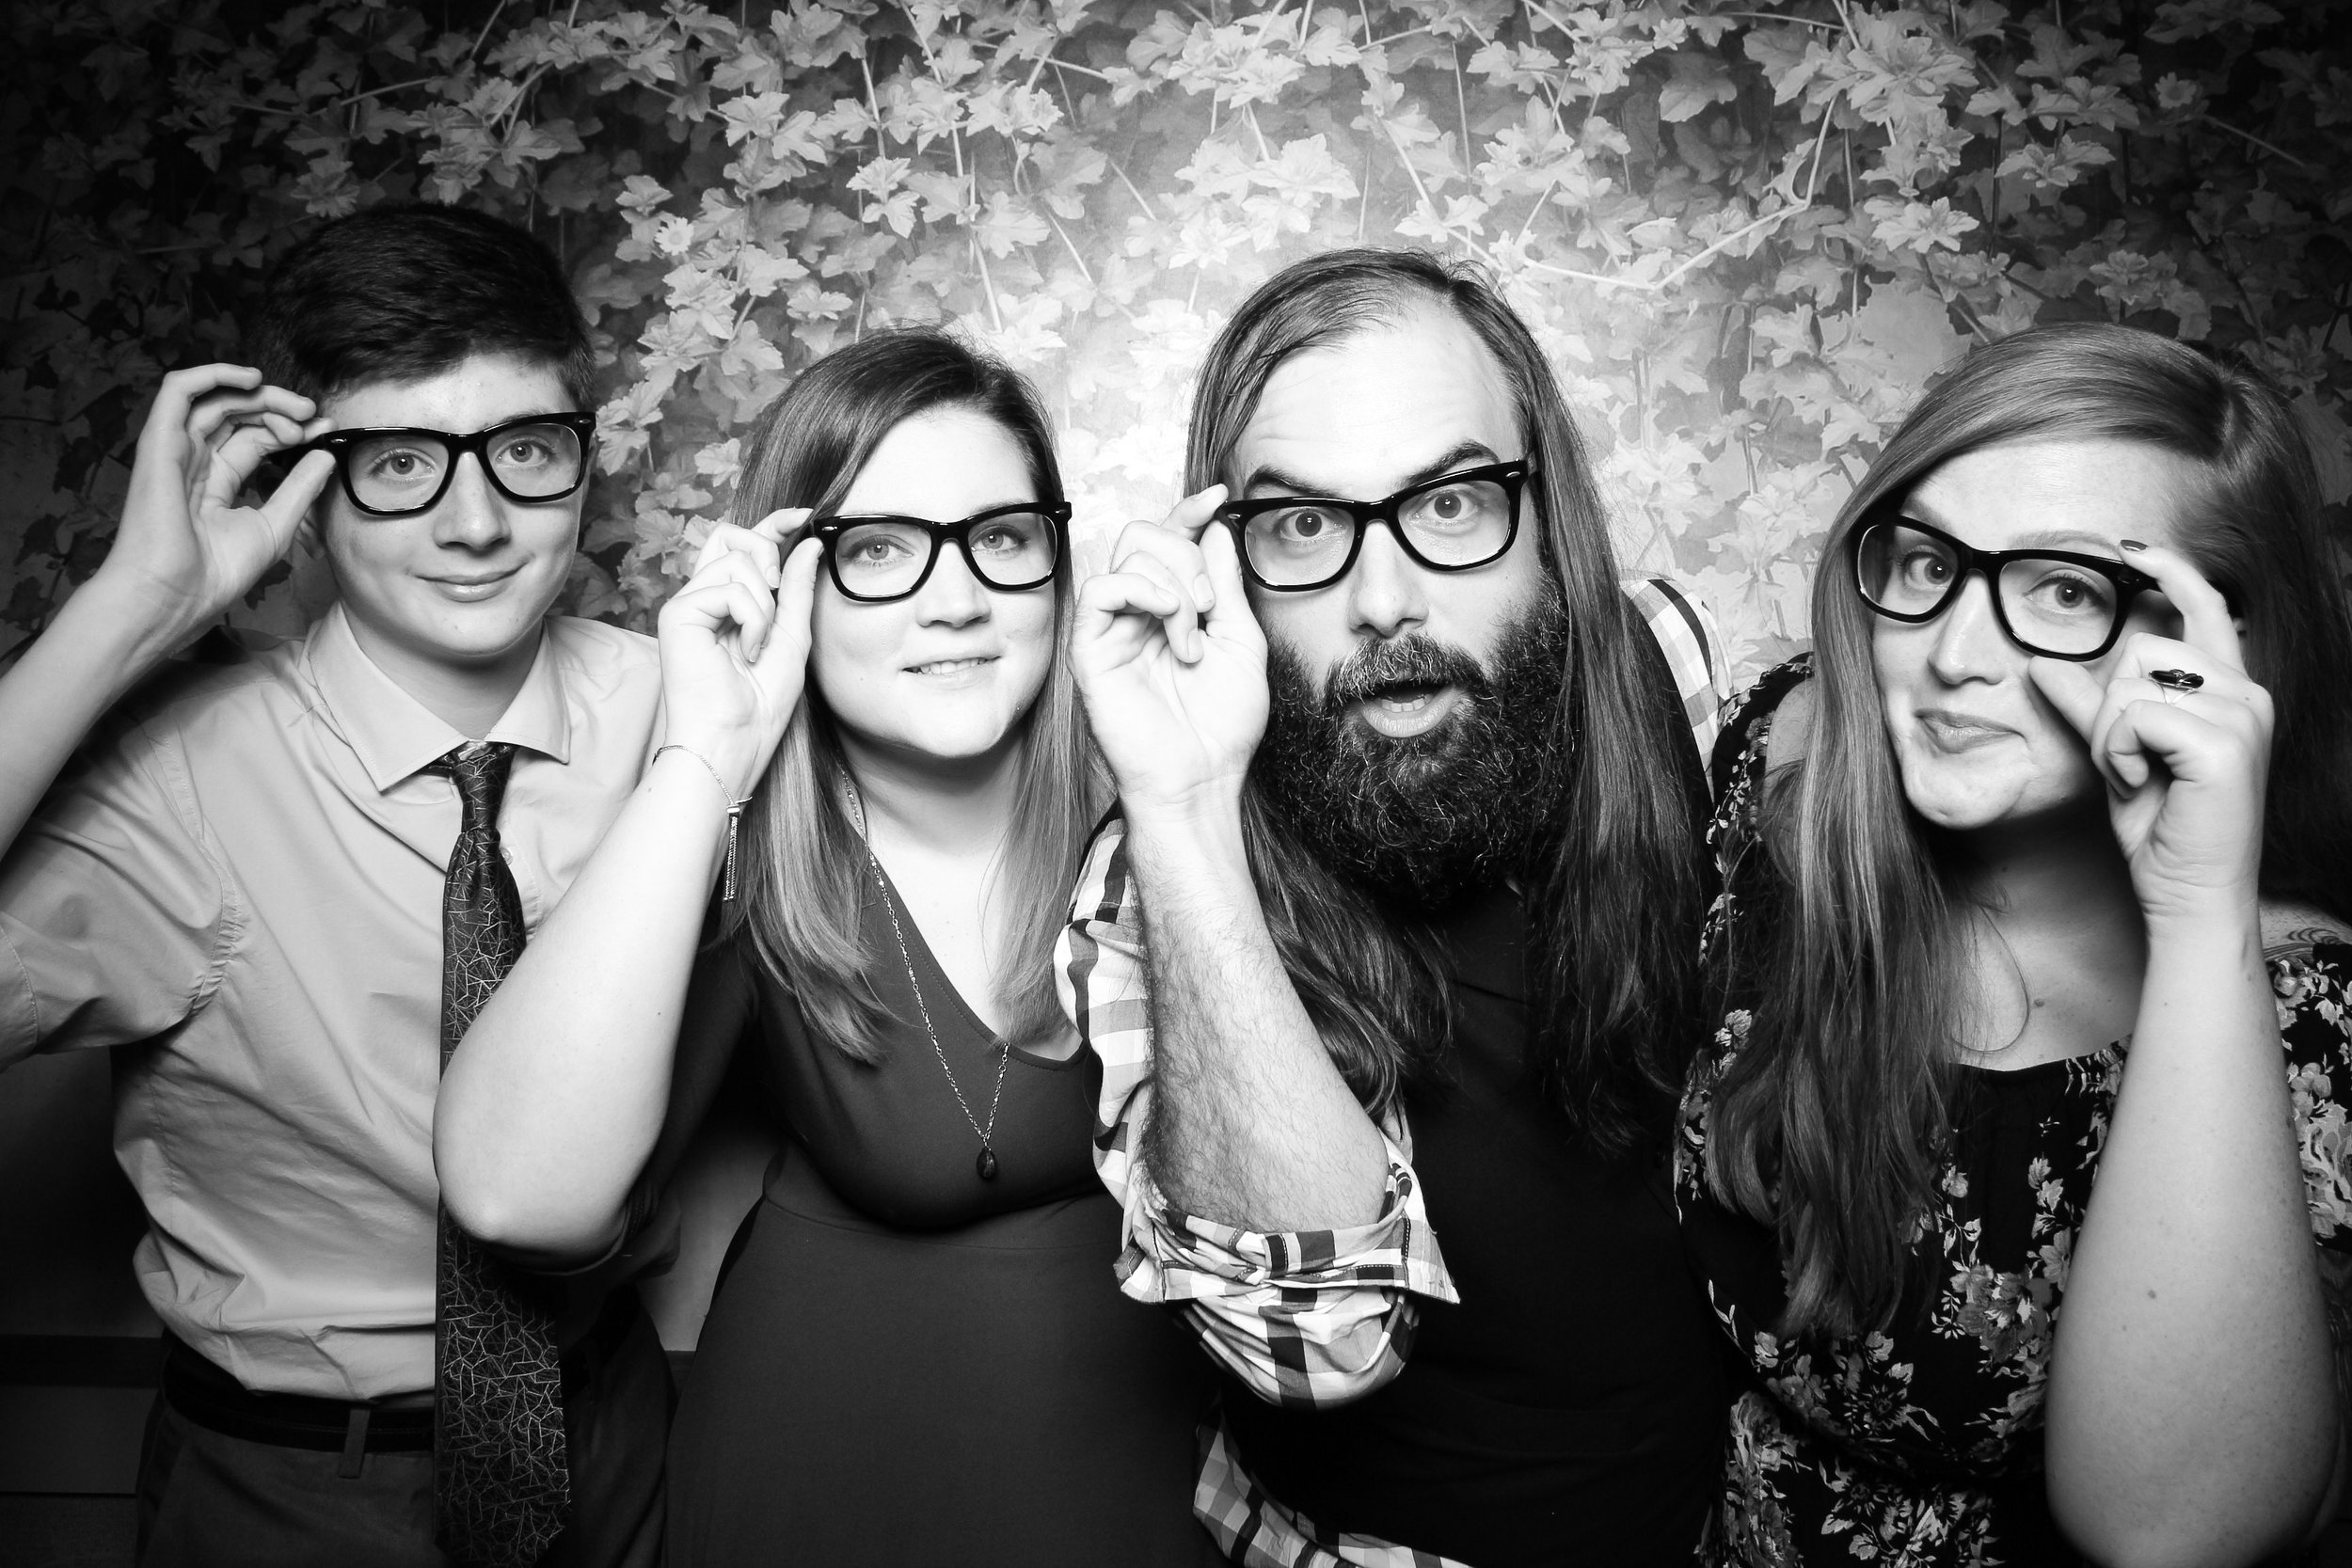 Randall_Oaks_Country_Club_Wedding_West_Dundee_Photo_Booth_26.jpg